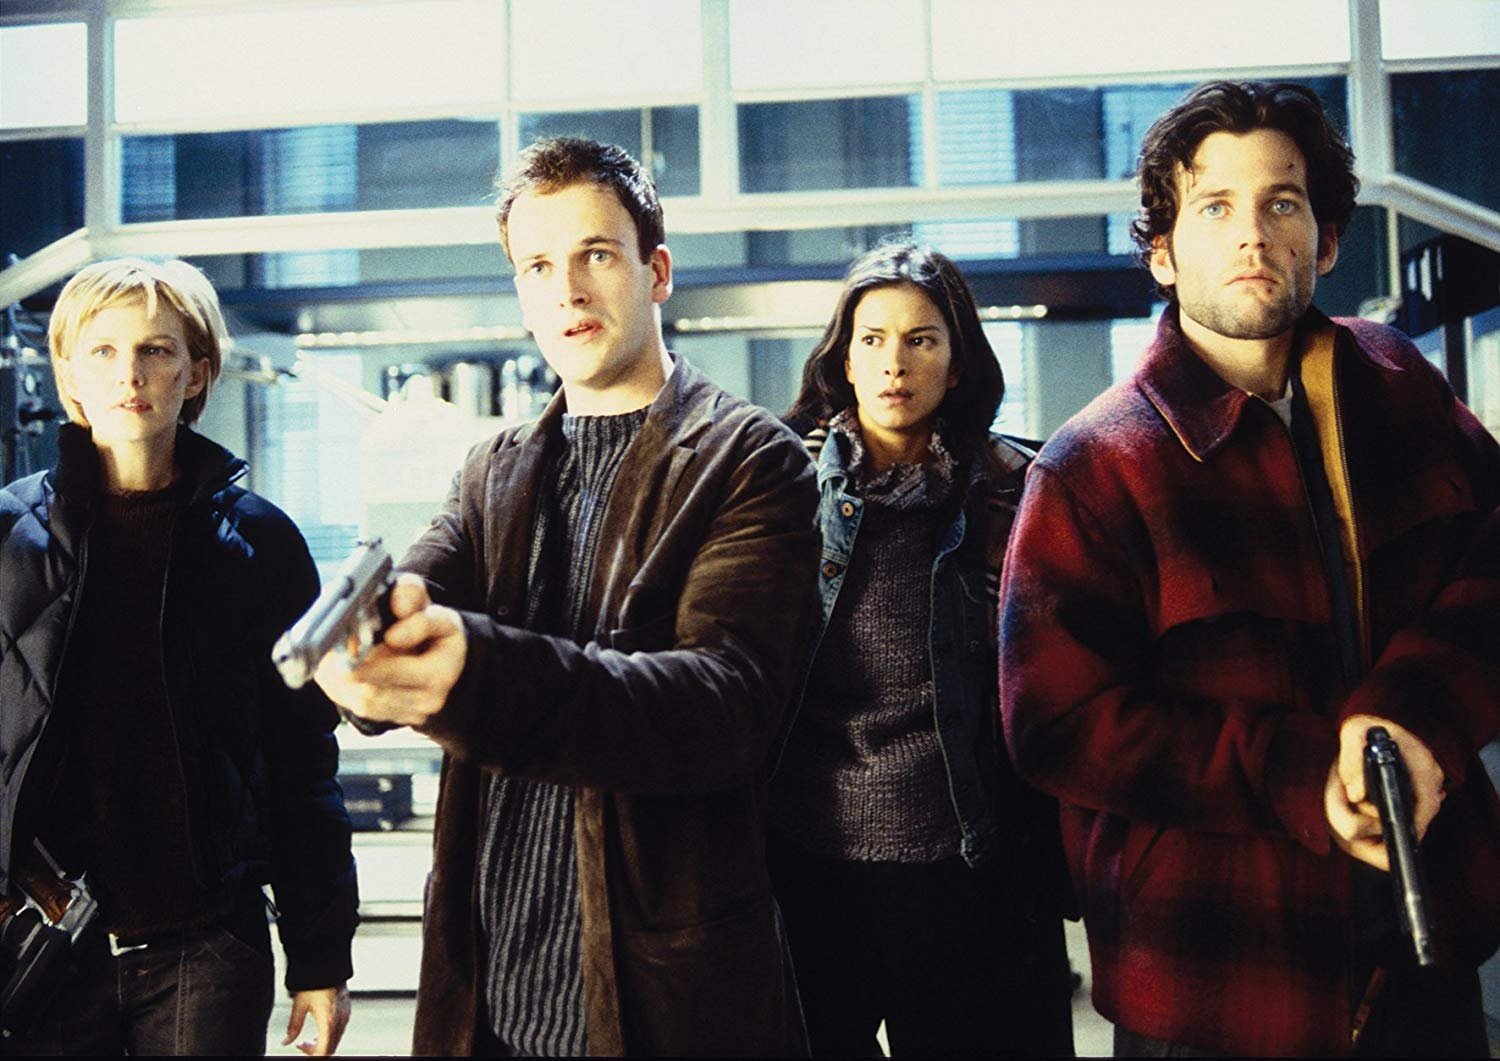 The trainee profilers - Kathryn Morris, Jonny Lee Miller, Patricia Velasquez, Eion Bailey - try to work out who among their number is the killer in Mindhunters (2004)